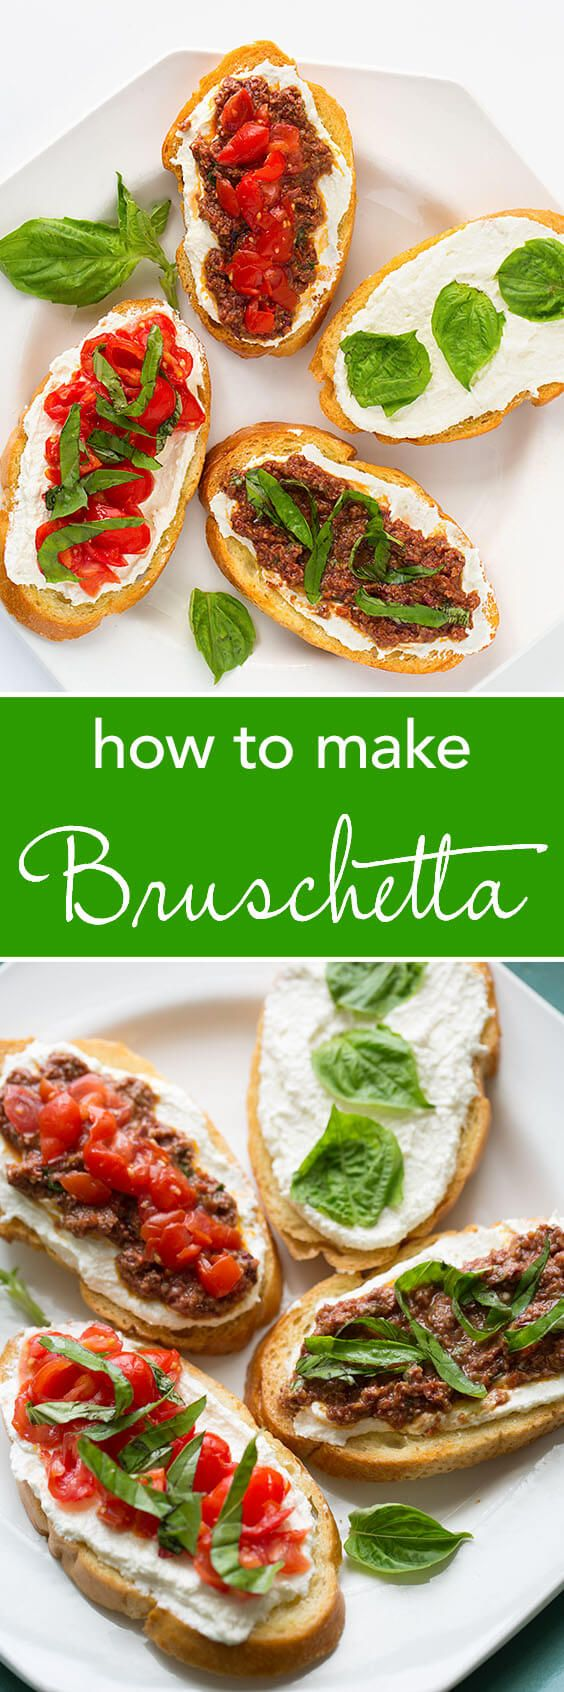 We show you how to make Bruschetta. Easy and delicious! simplyhappyfoodie.com